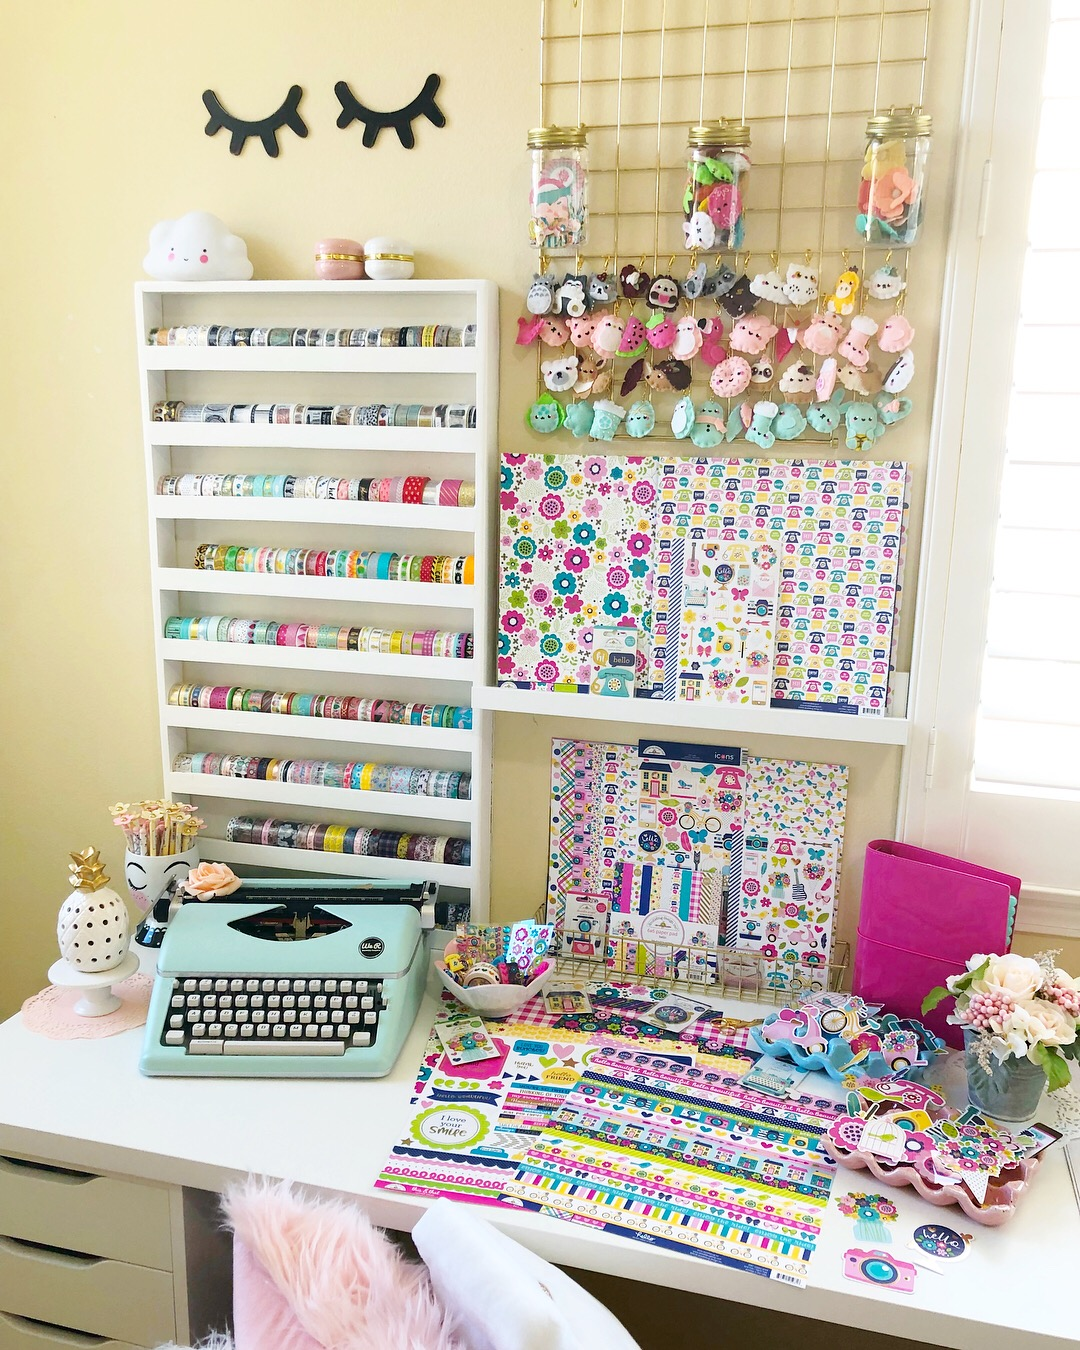 Simple Stories Design Team member / Jomelle Gomez' Creative space / Planner fun